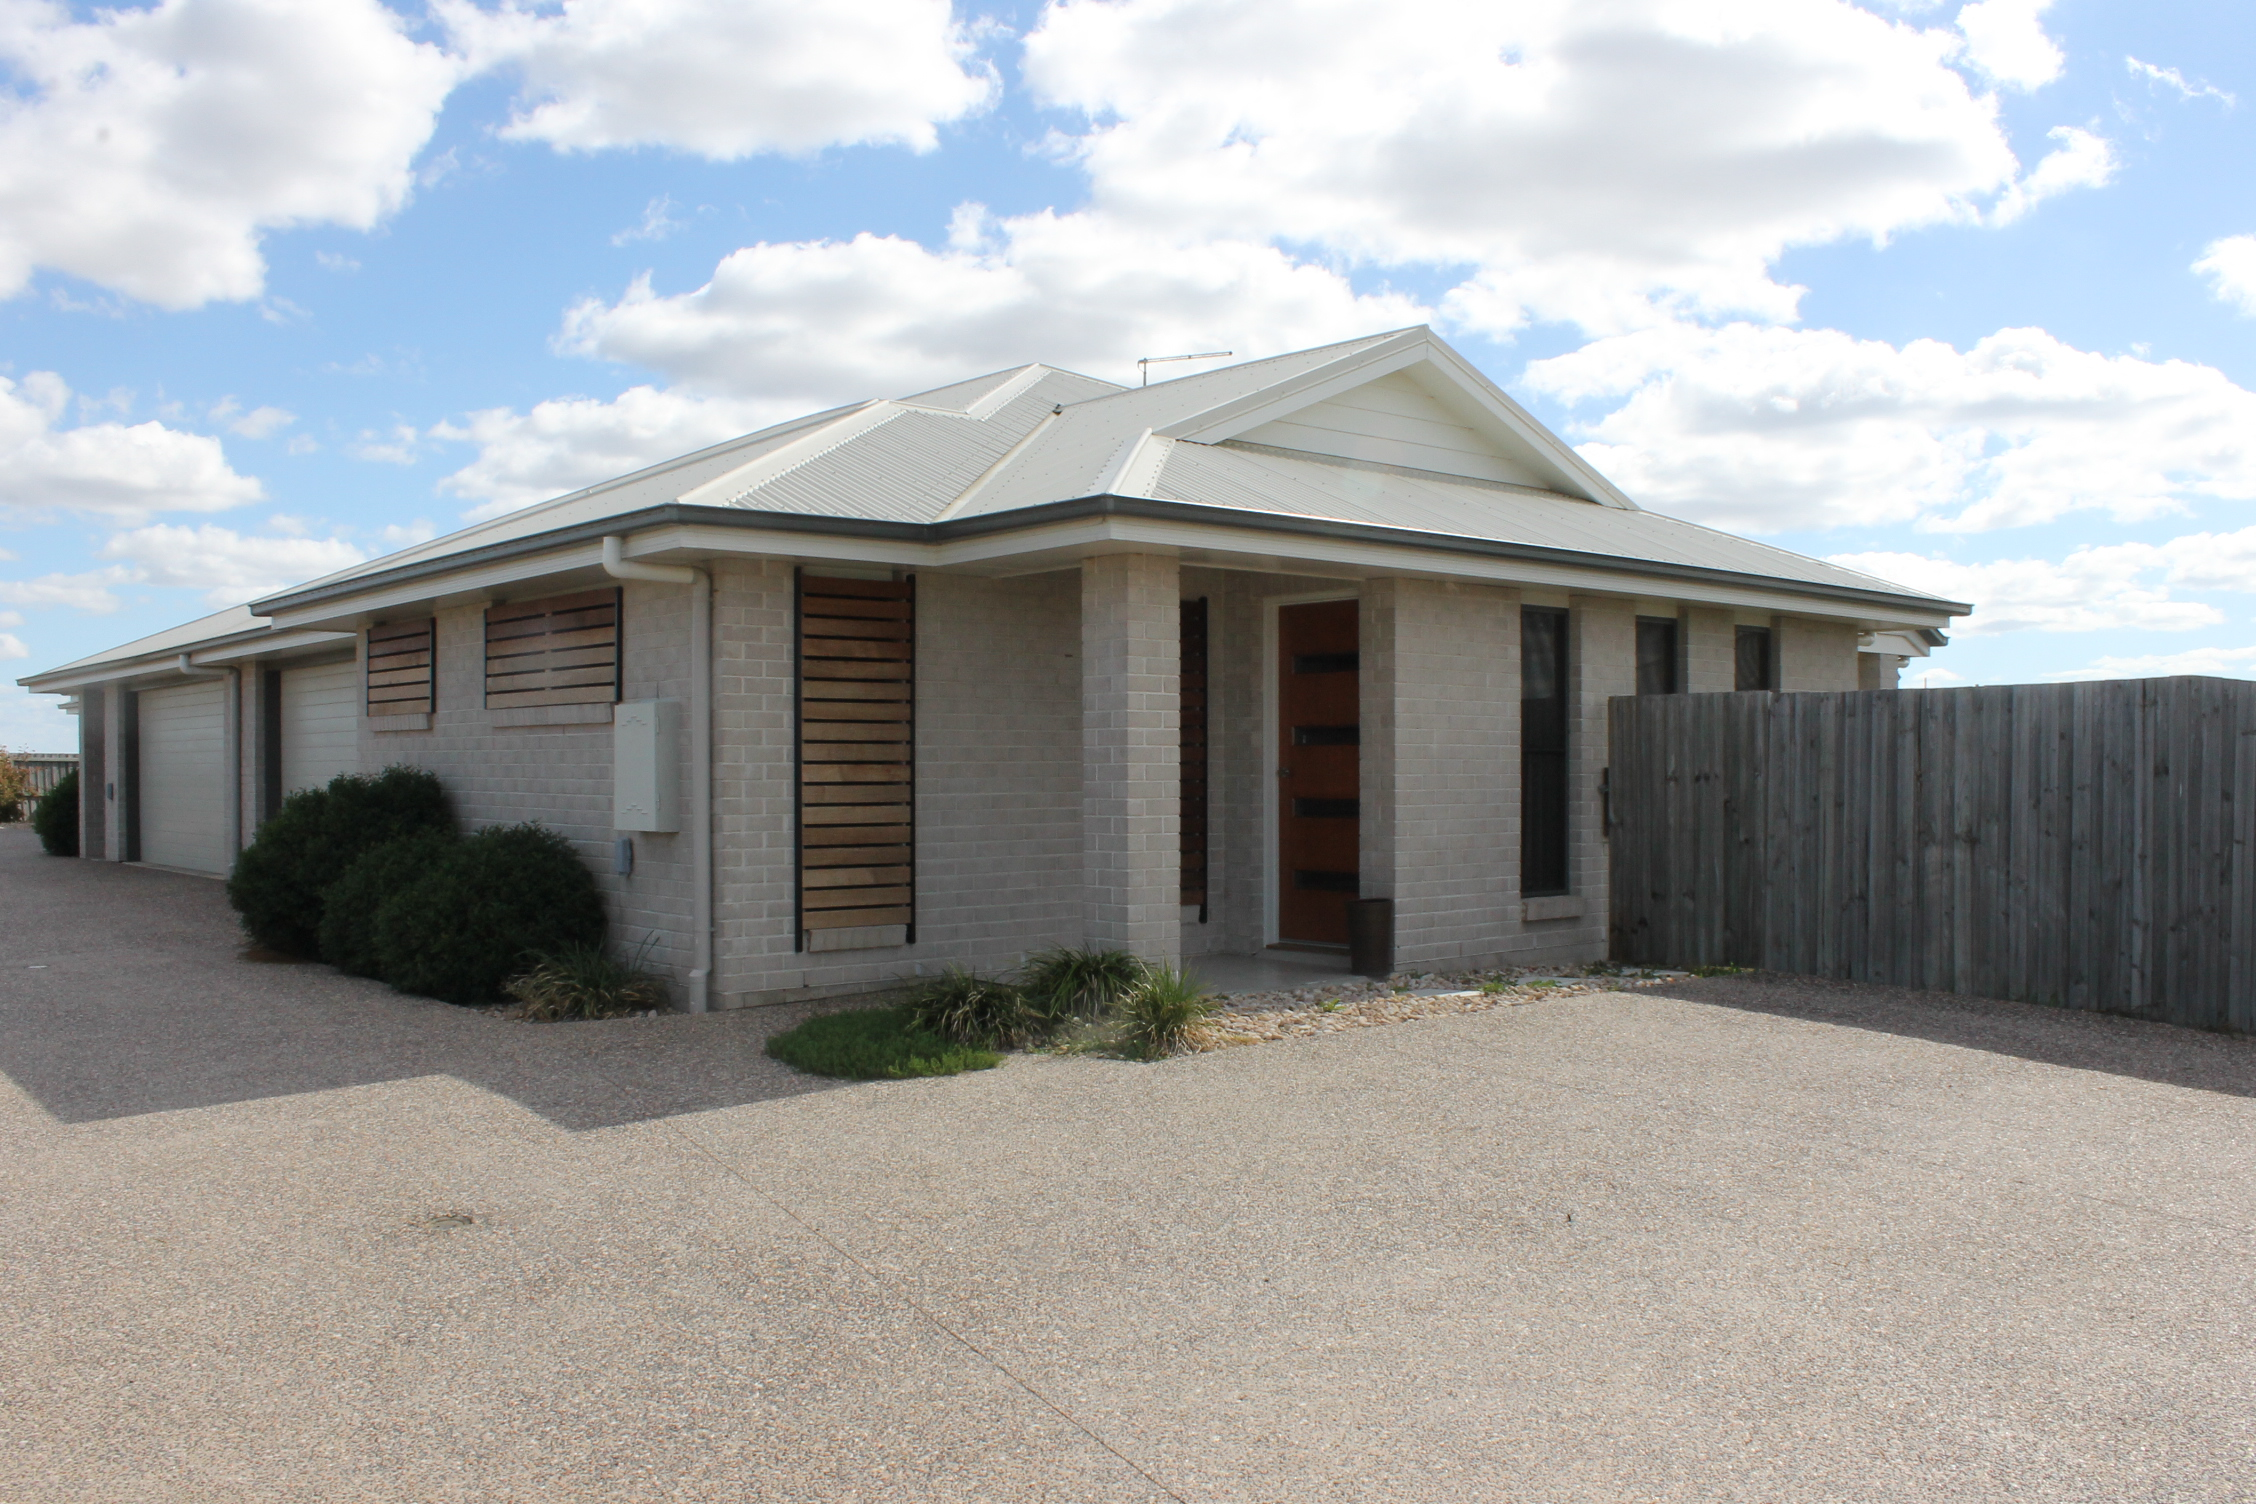 1 62 gosden drive dalby qld 4405 house for rent 250 for Garage ad nantes dalby